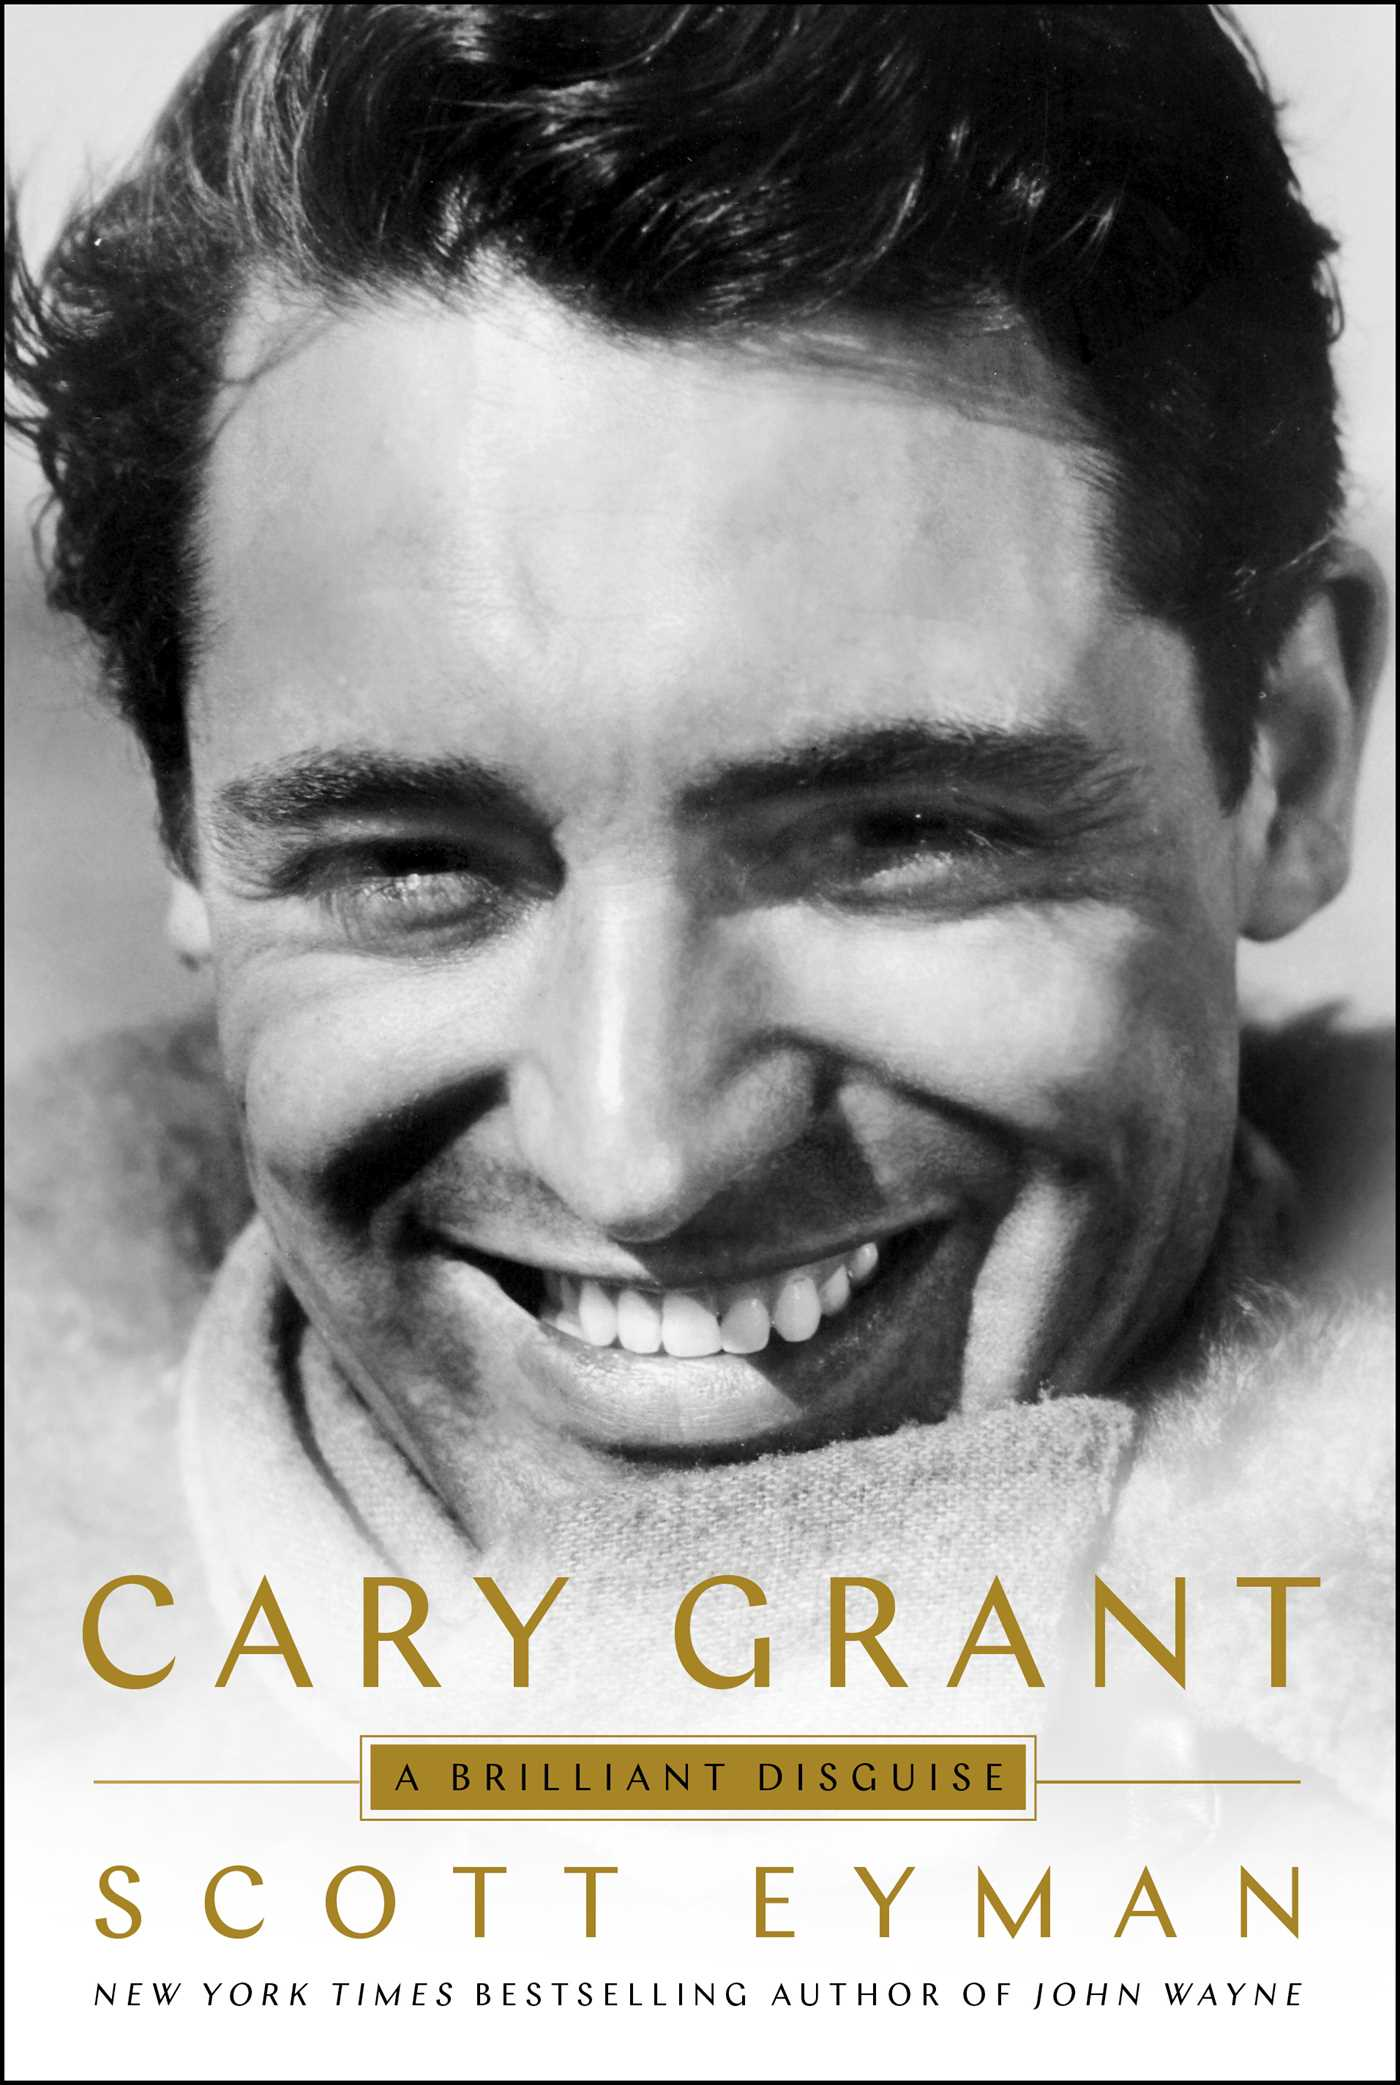 Cary Grant by Scott Eyman